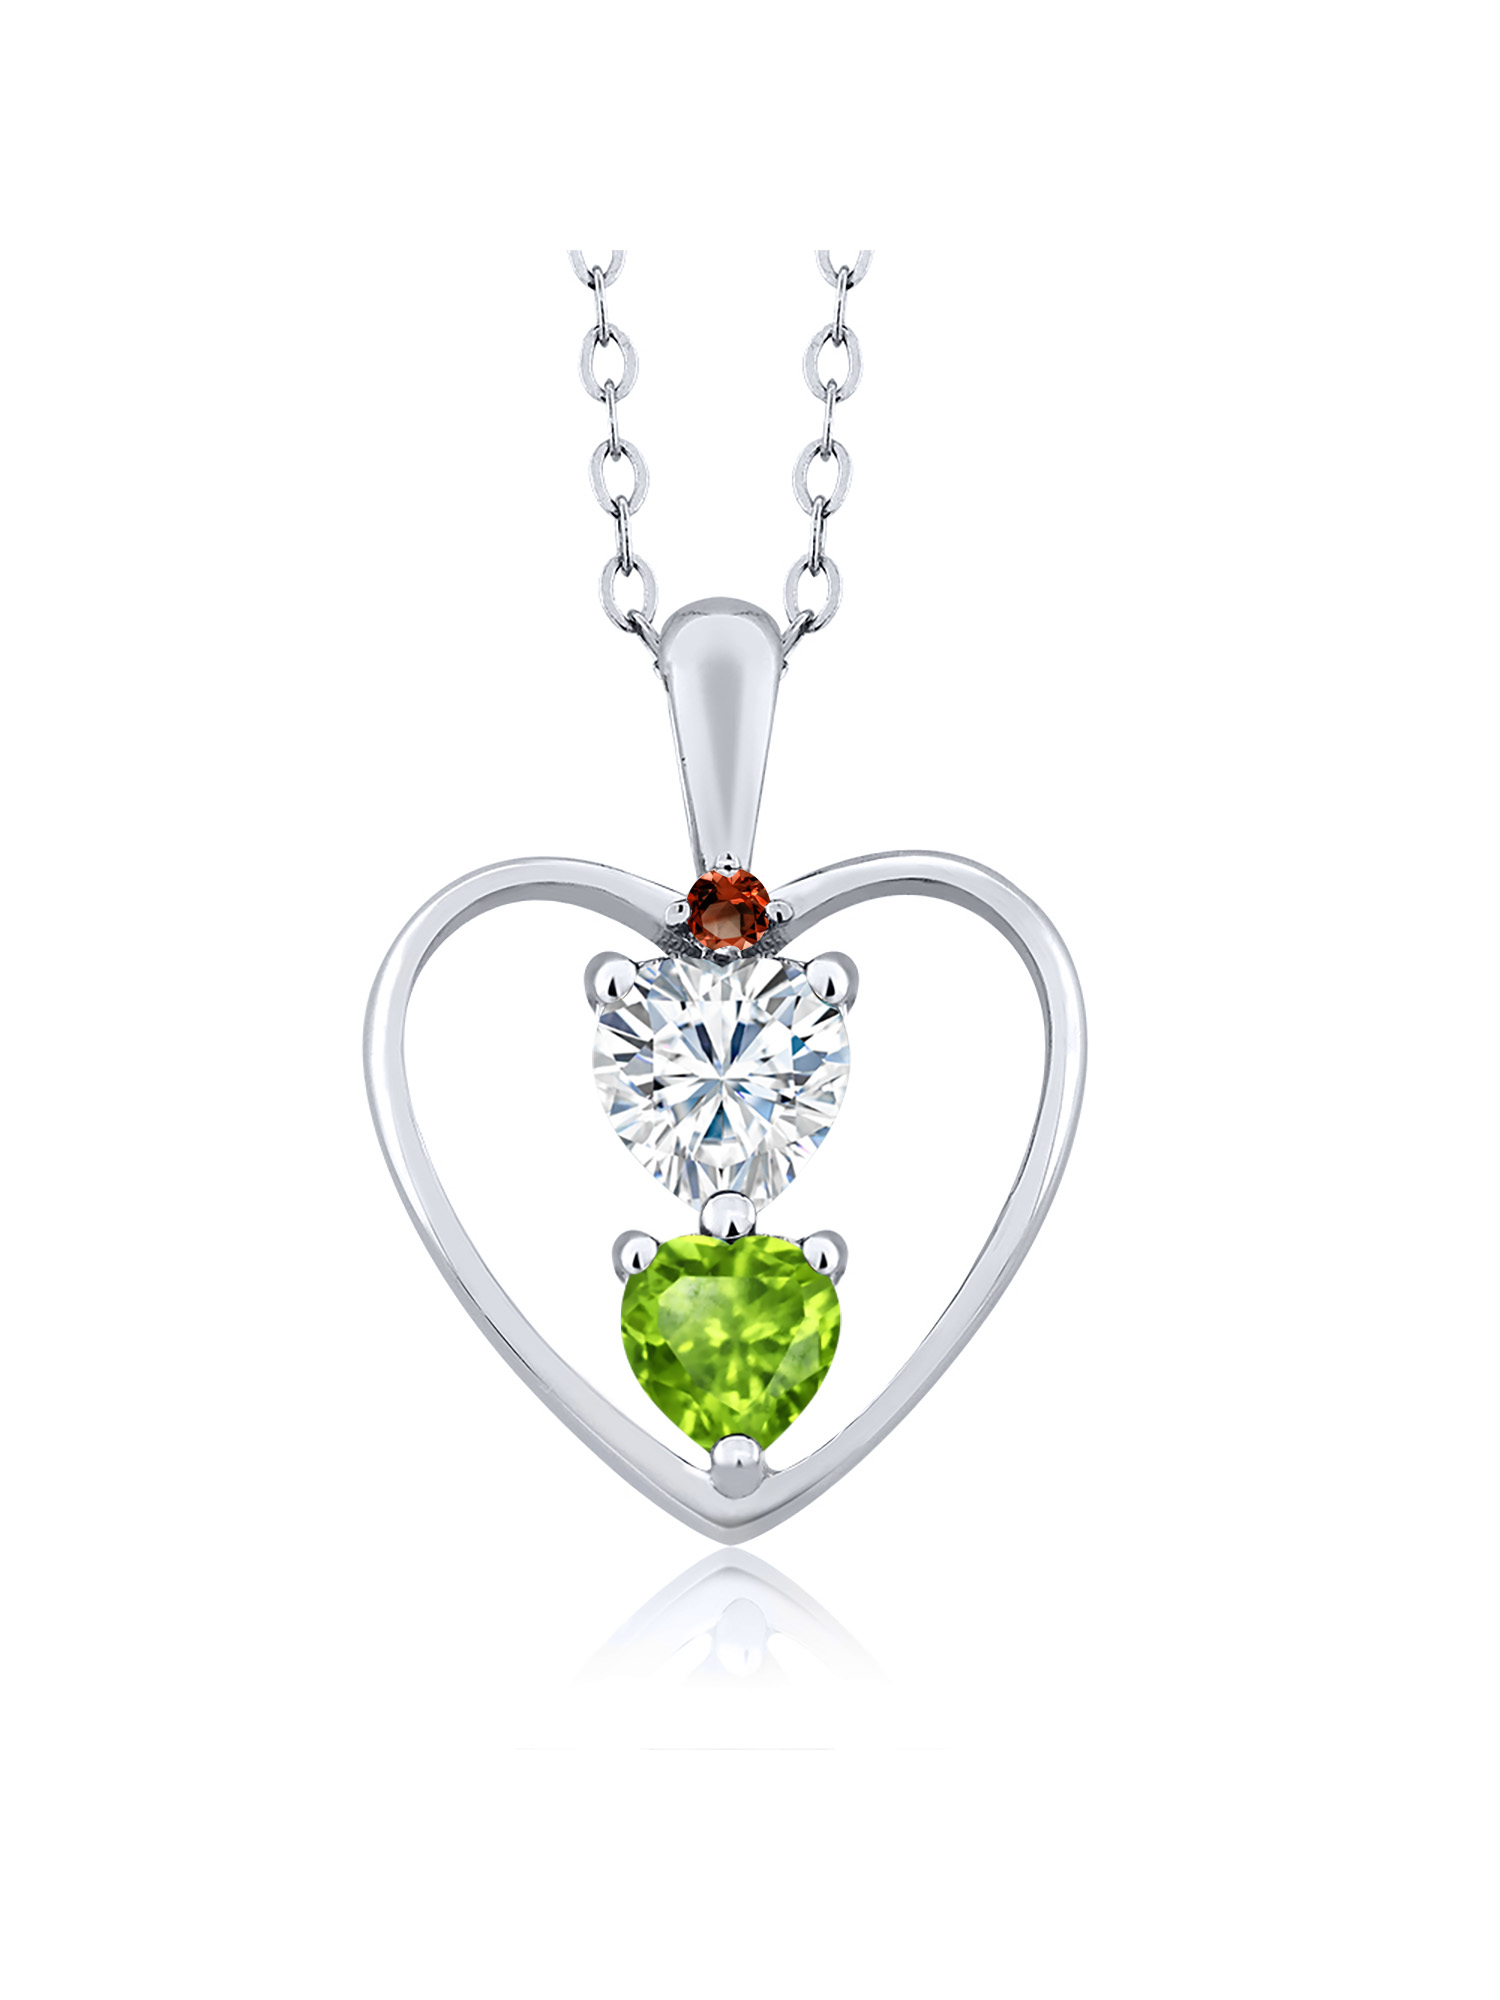 GHI DEW 18K Yellow Gold Plated Silver Pendant Forever Brilliant Created Moissanite by Charles /& Colvard and Garnet Heart Shape 0.50ct